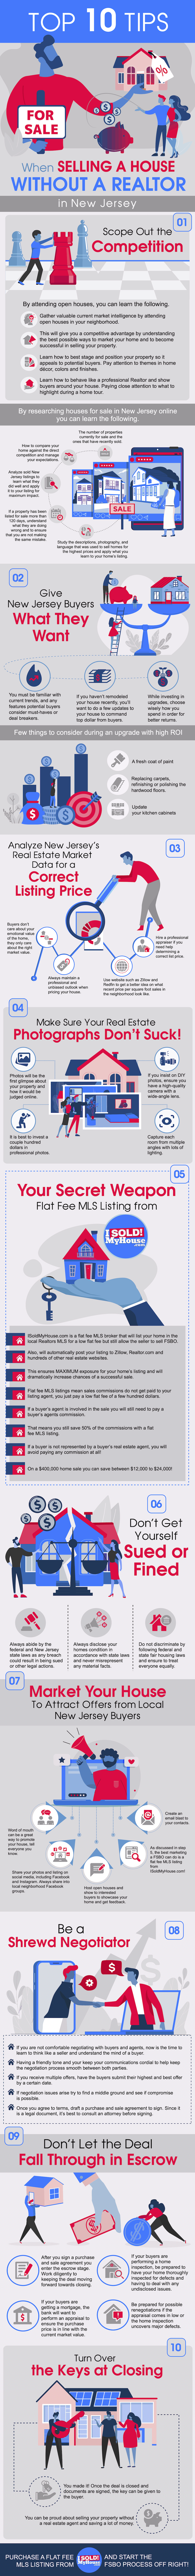 infographic of the 10 steps to sell a house in new jersey without an agent